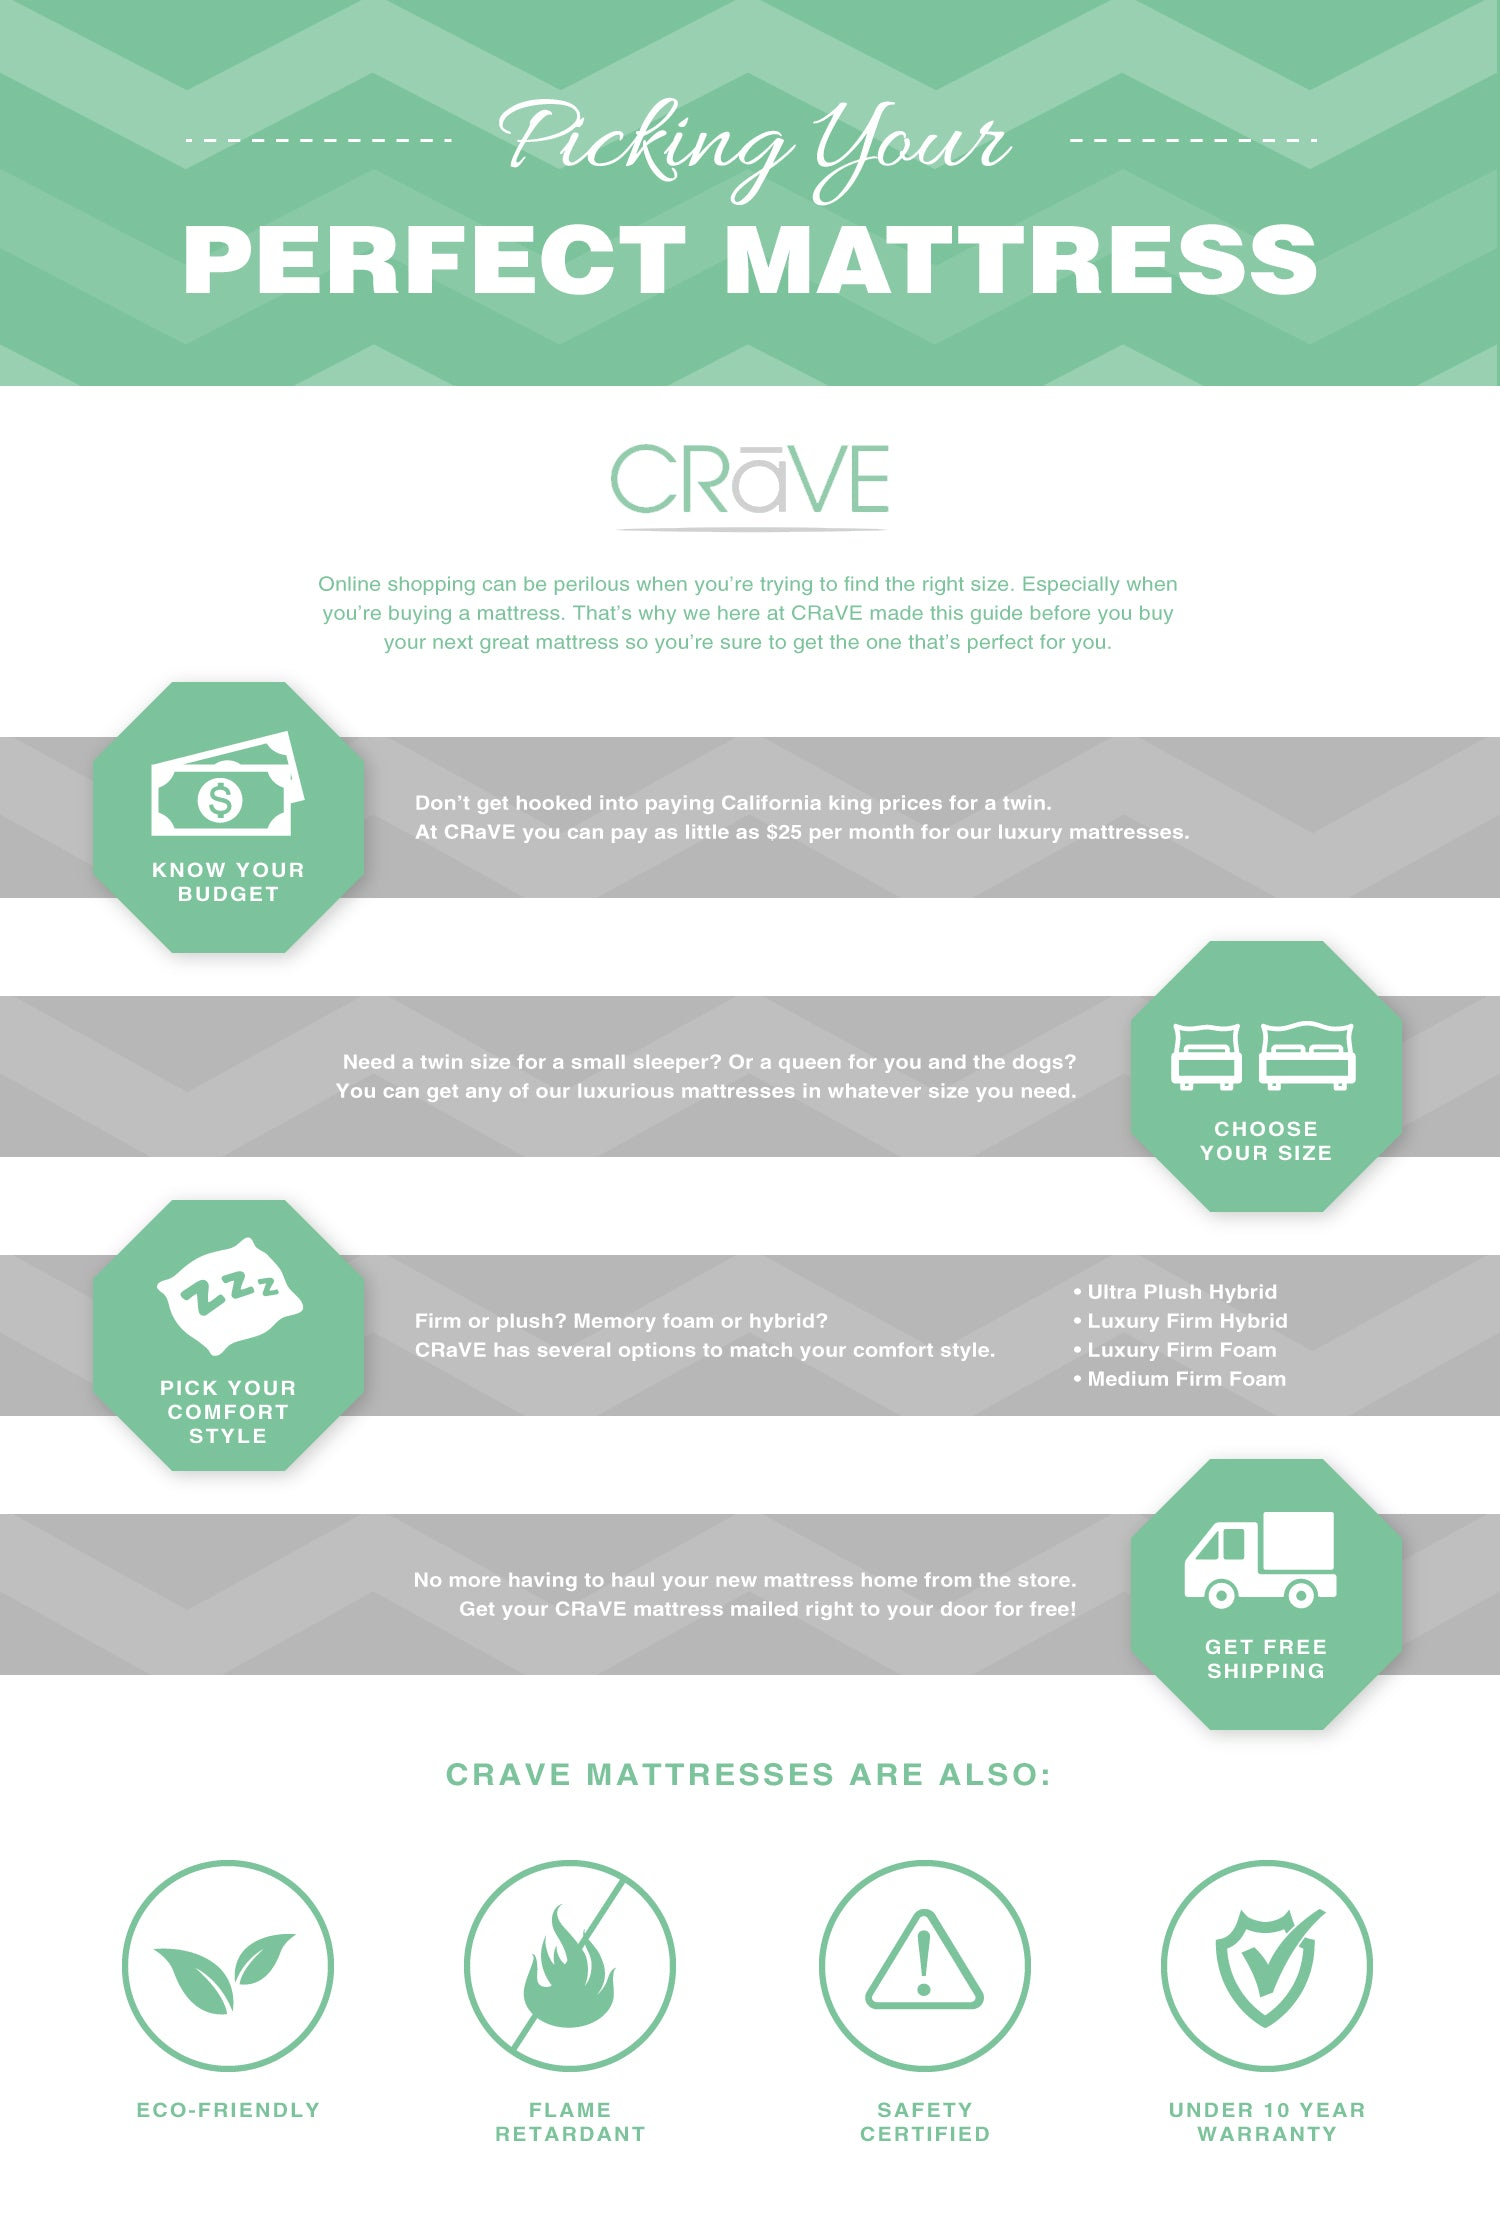 Shop For Mattresses | Picking Your Perfect Mattress – Crave